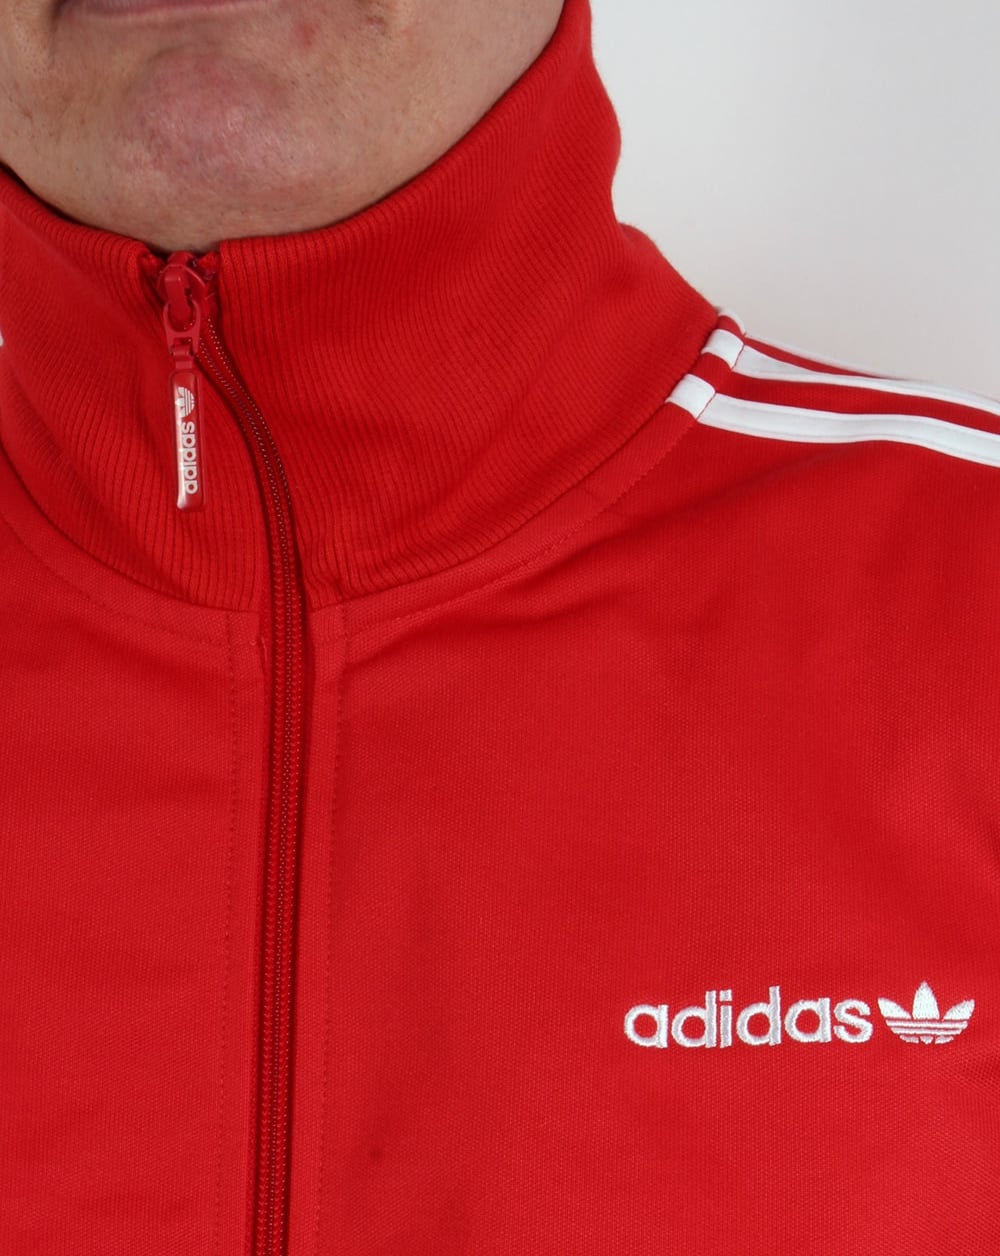 adidas tracksuit red white